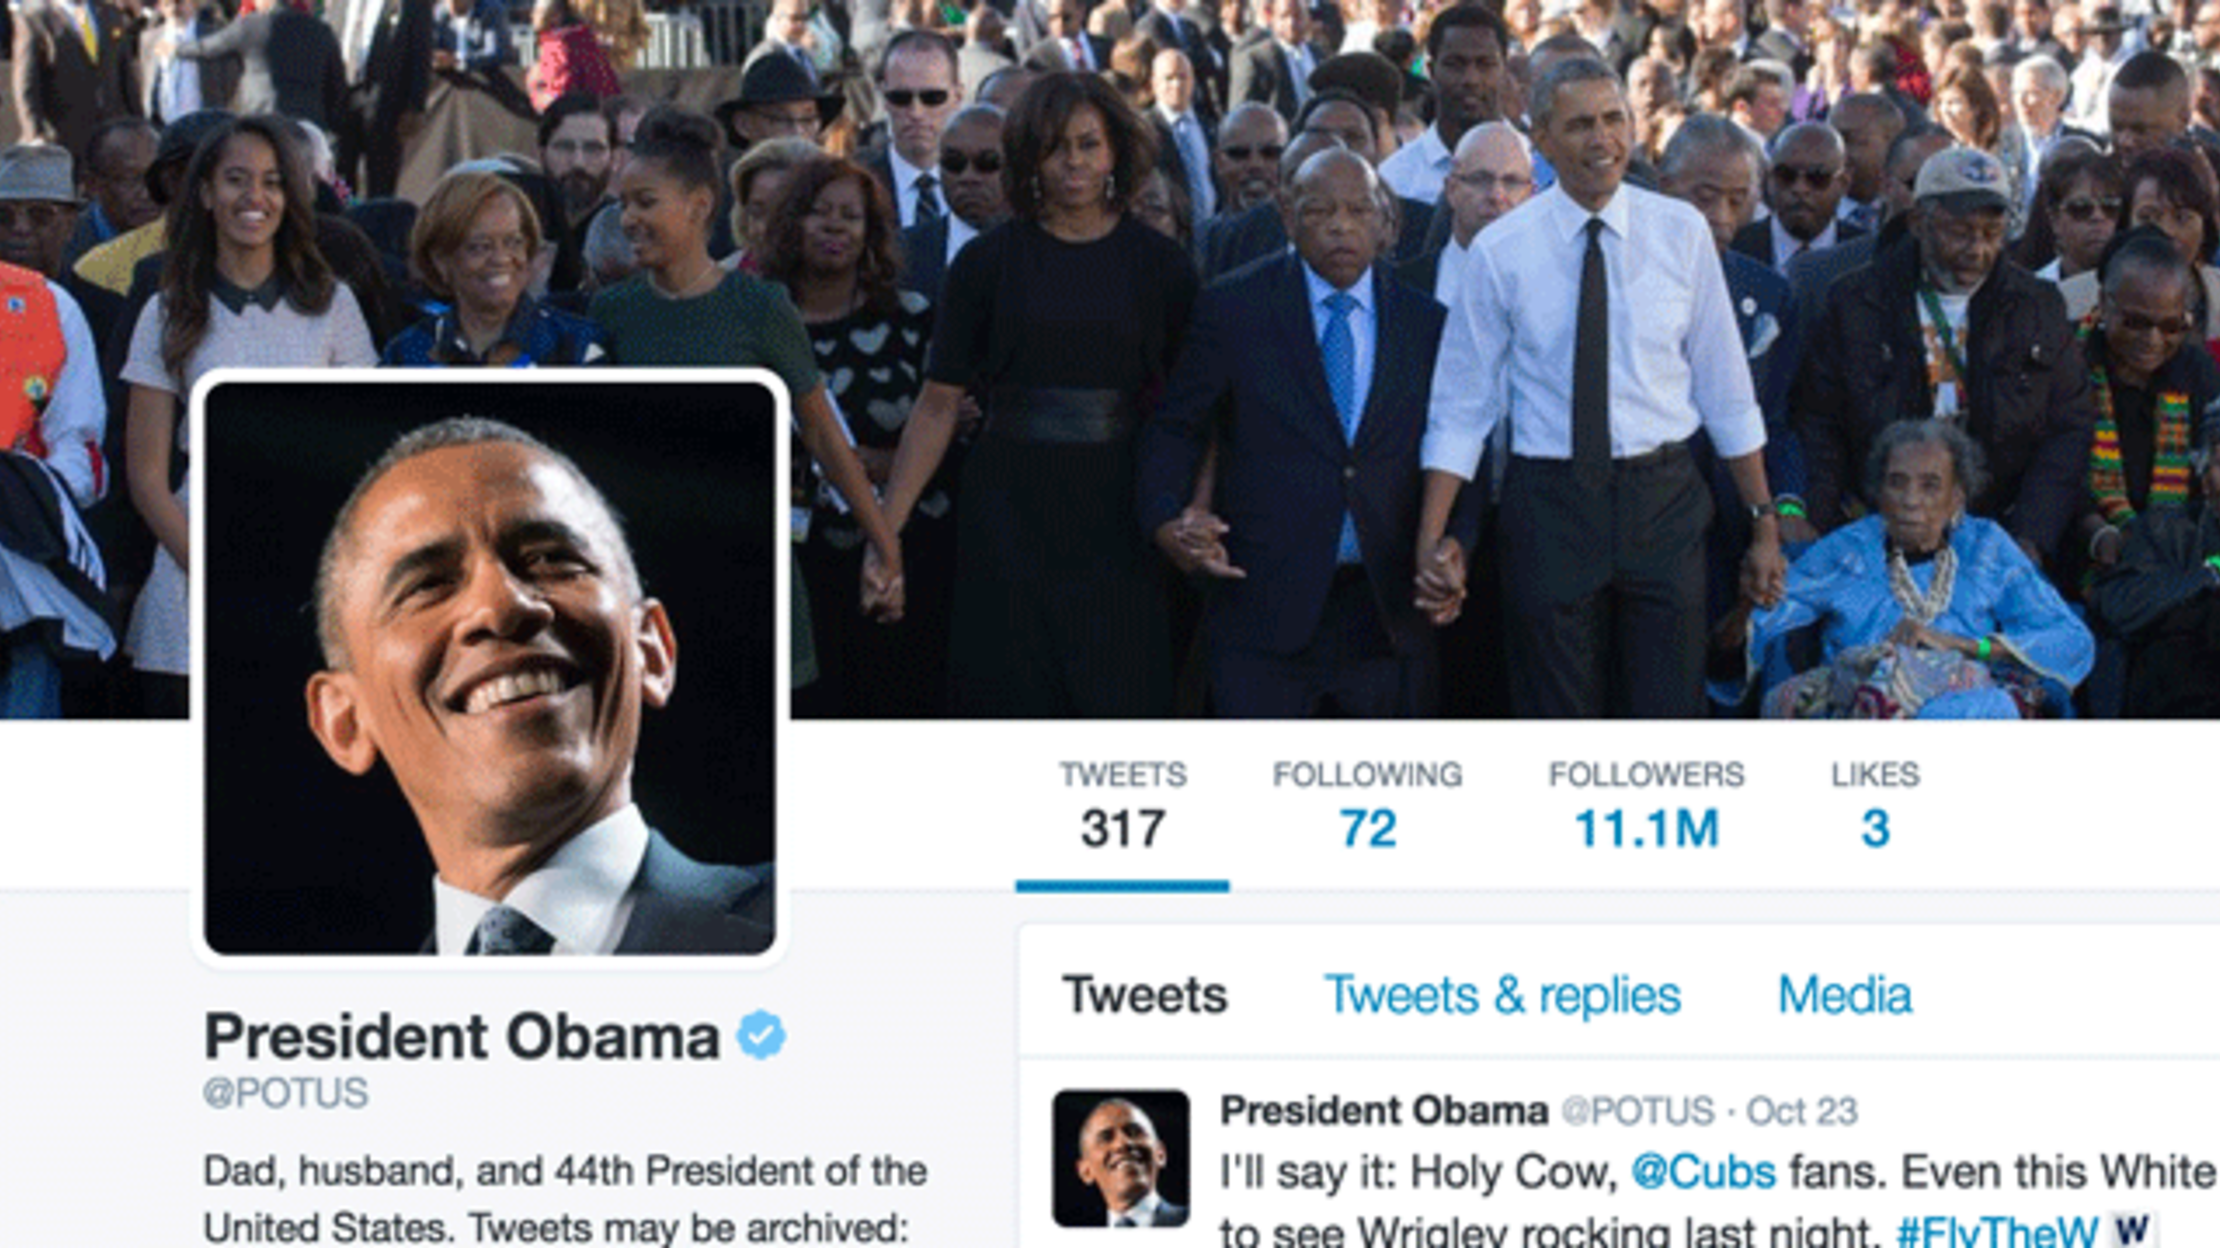 What Happens to the President's Twitter Account When He Leaves Office?